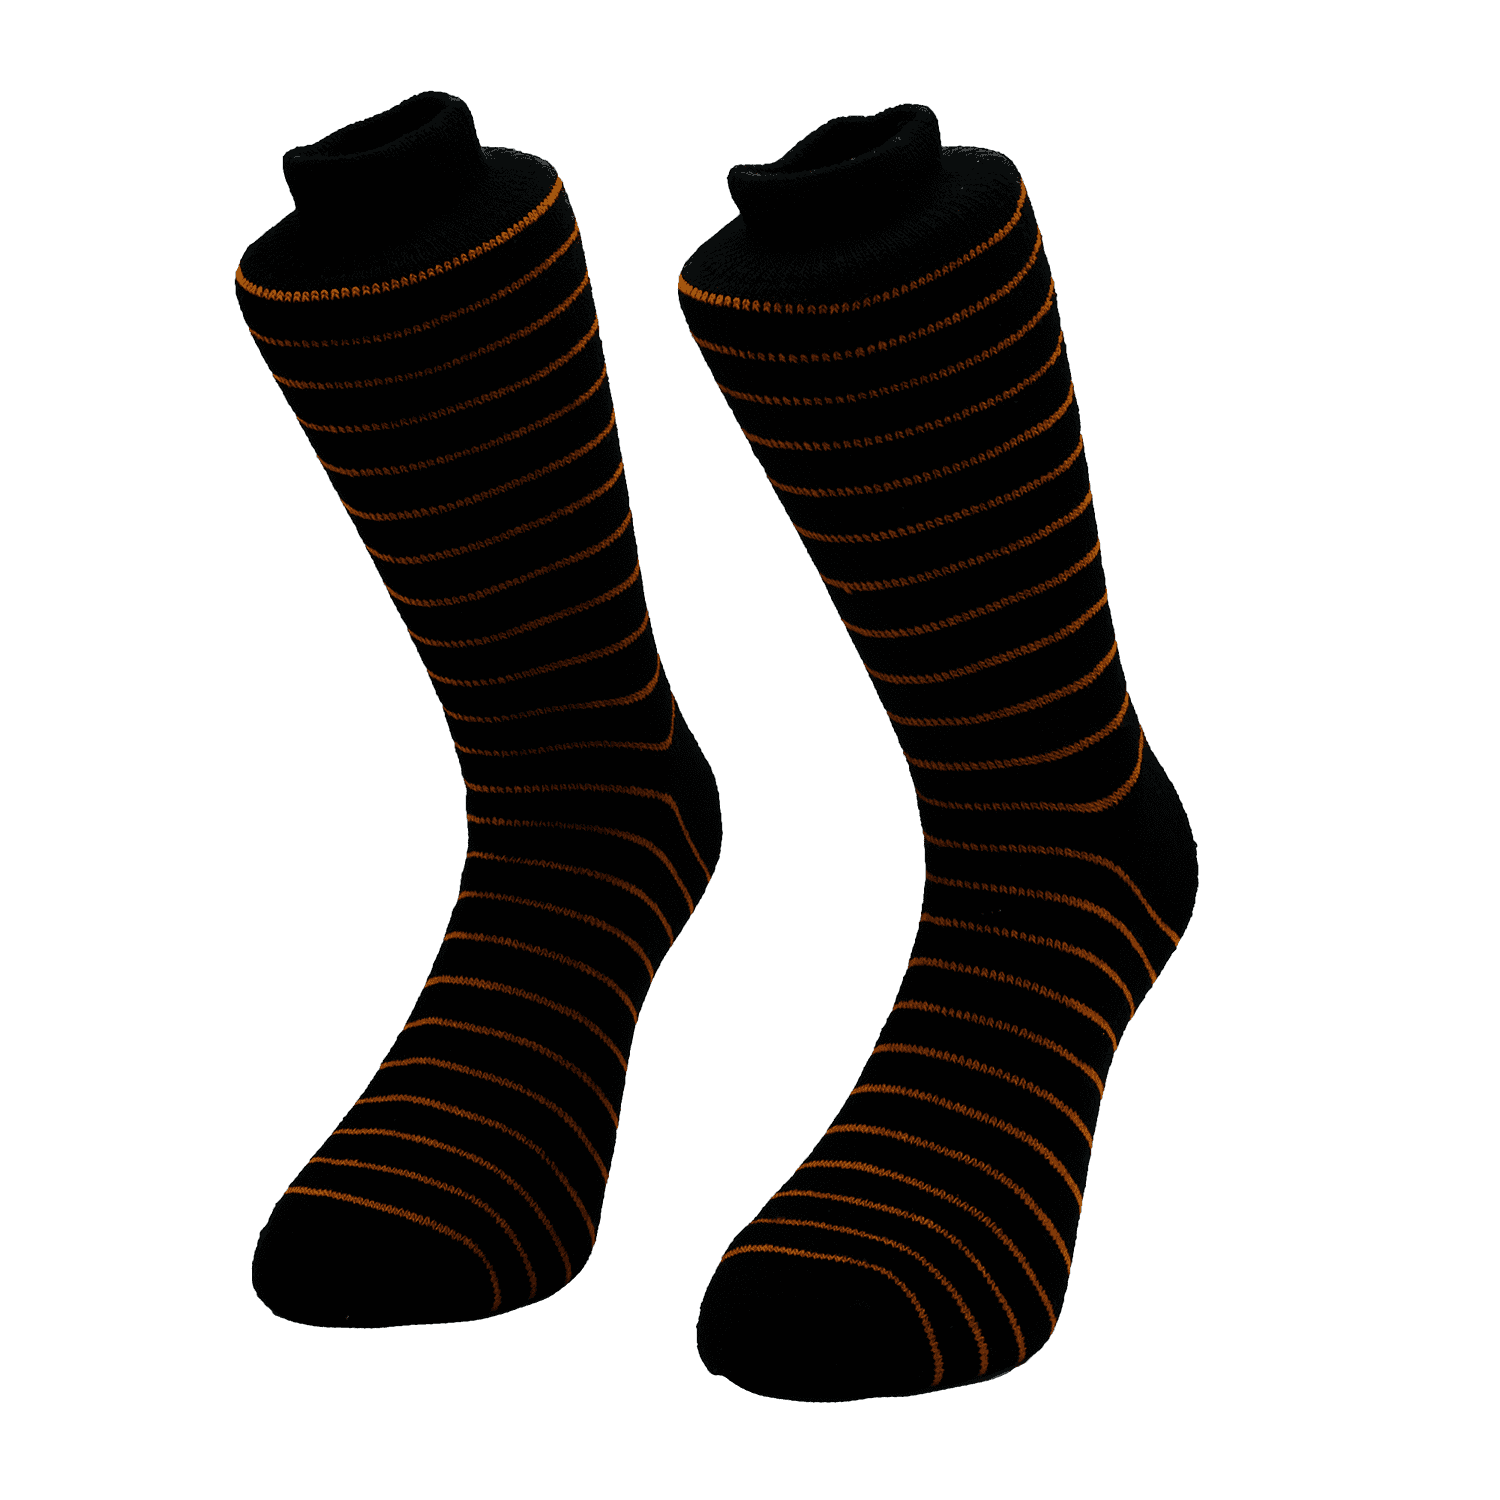 Customized Business socks with company logo